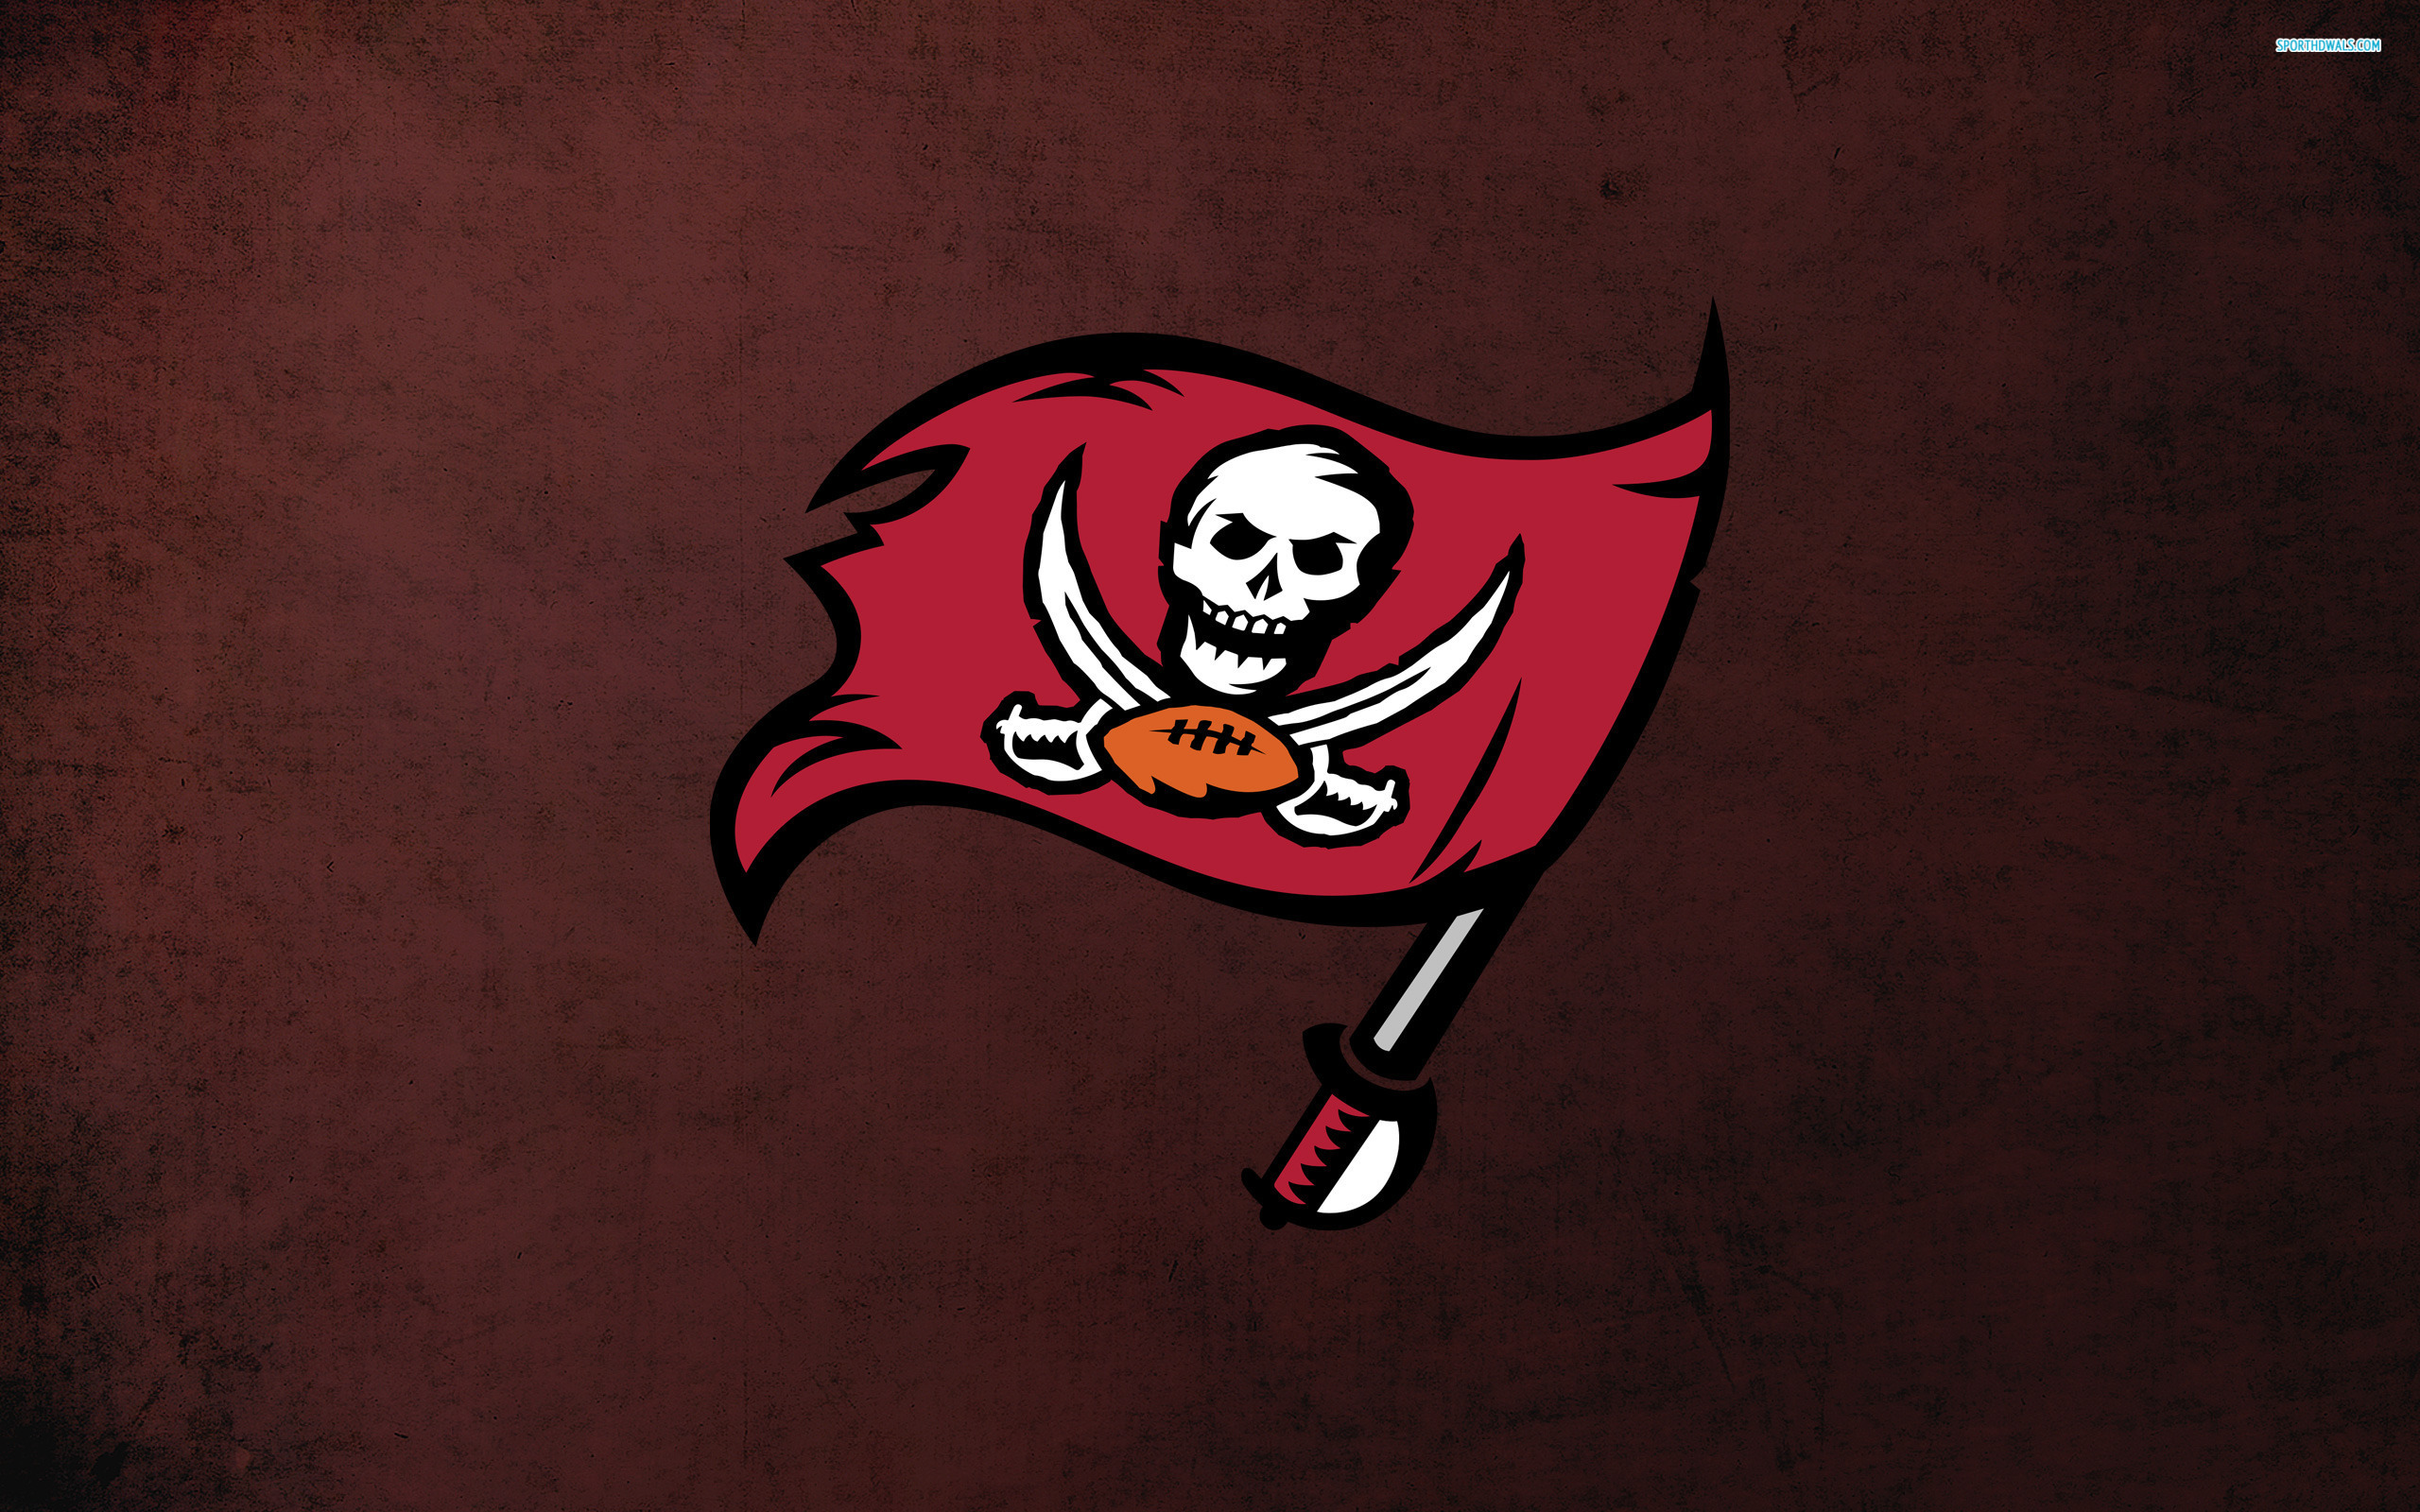 45 tampa bay buccaneers wallpaper hd on wallpapersafari 45 tampa bay buccaneers wallpaper hd